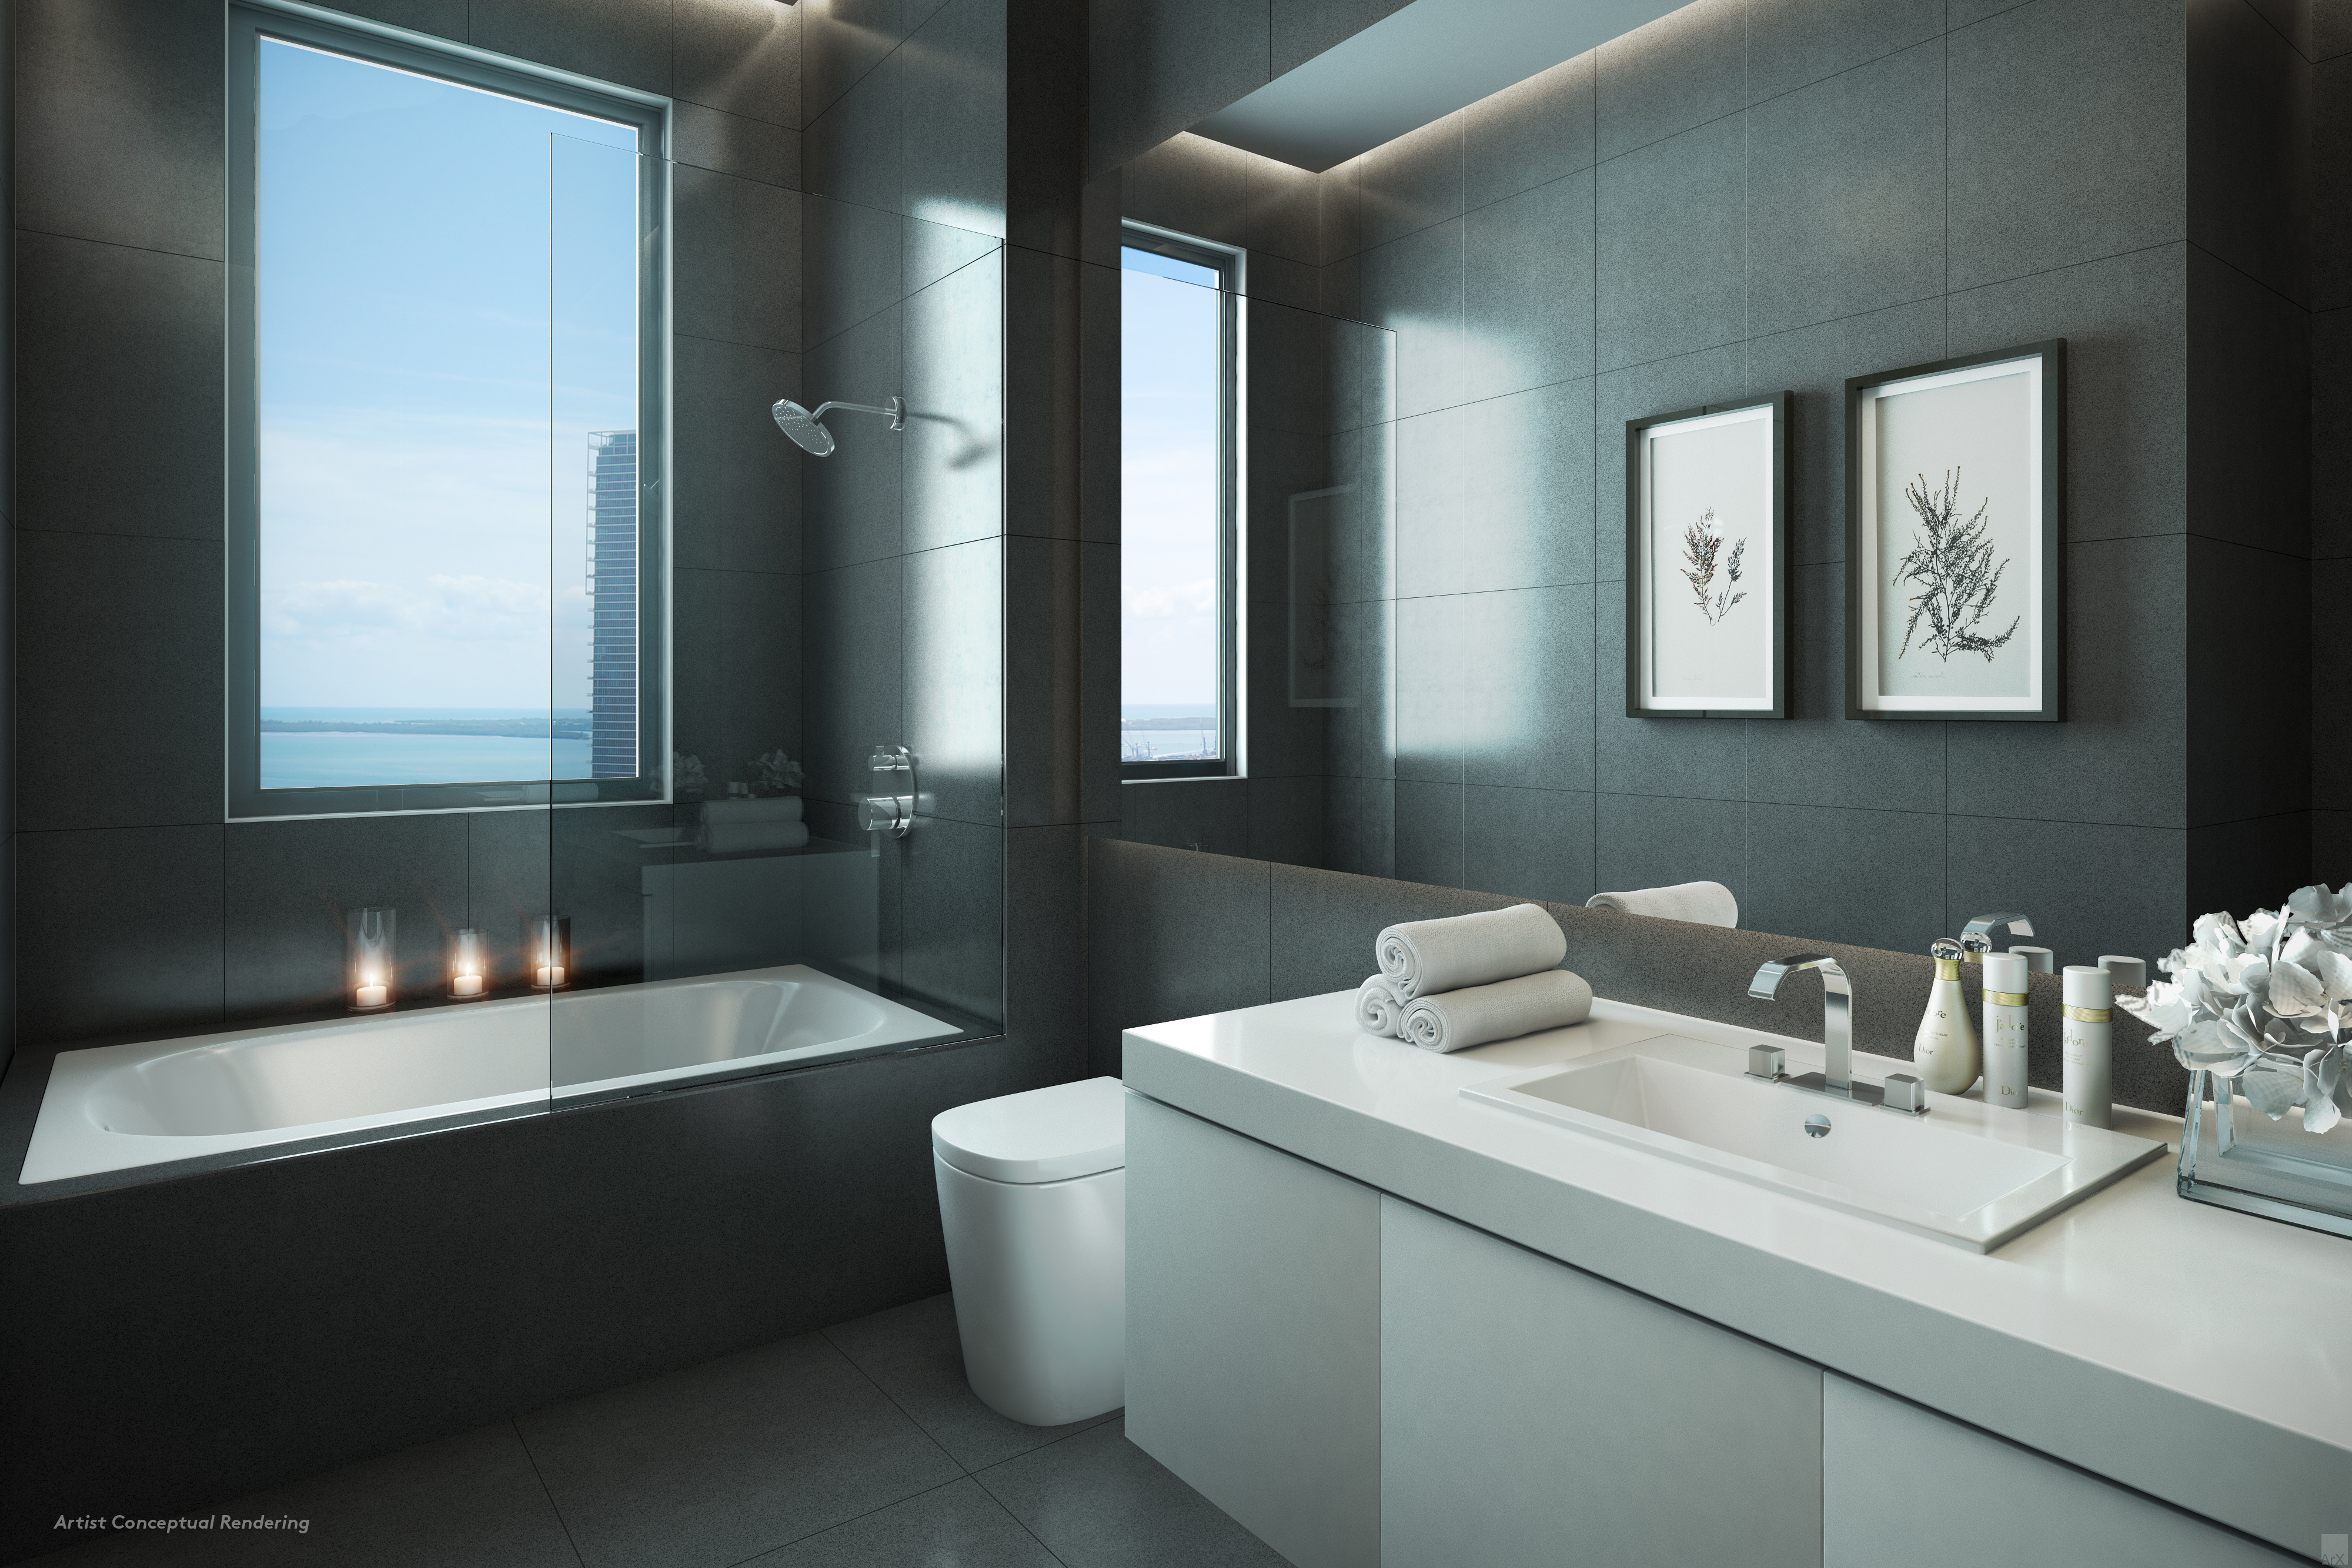 CANVAS Bathroom